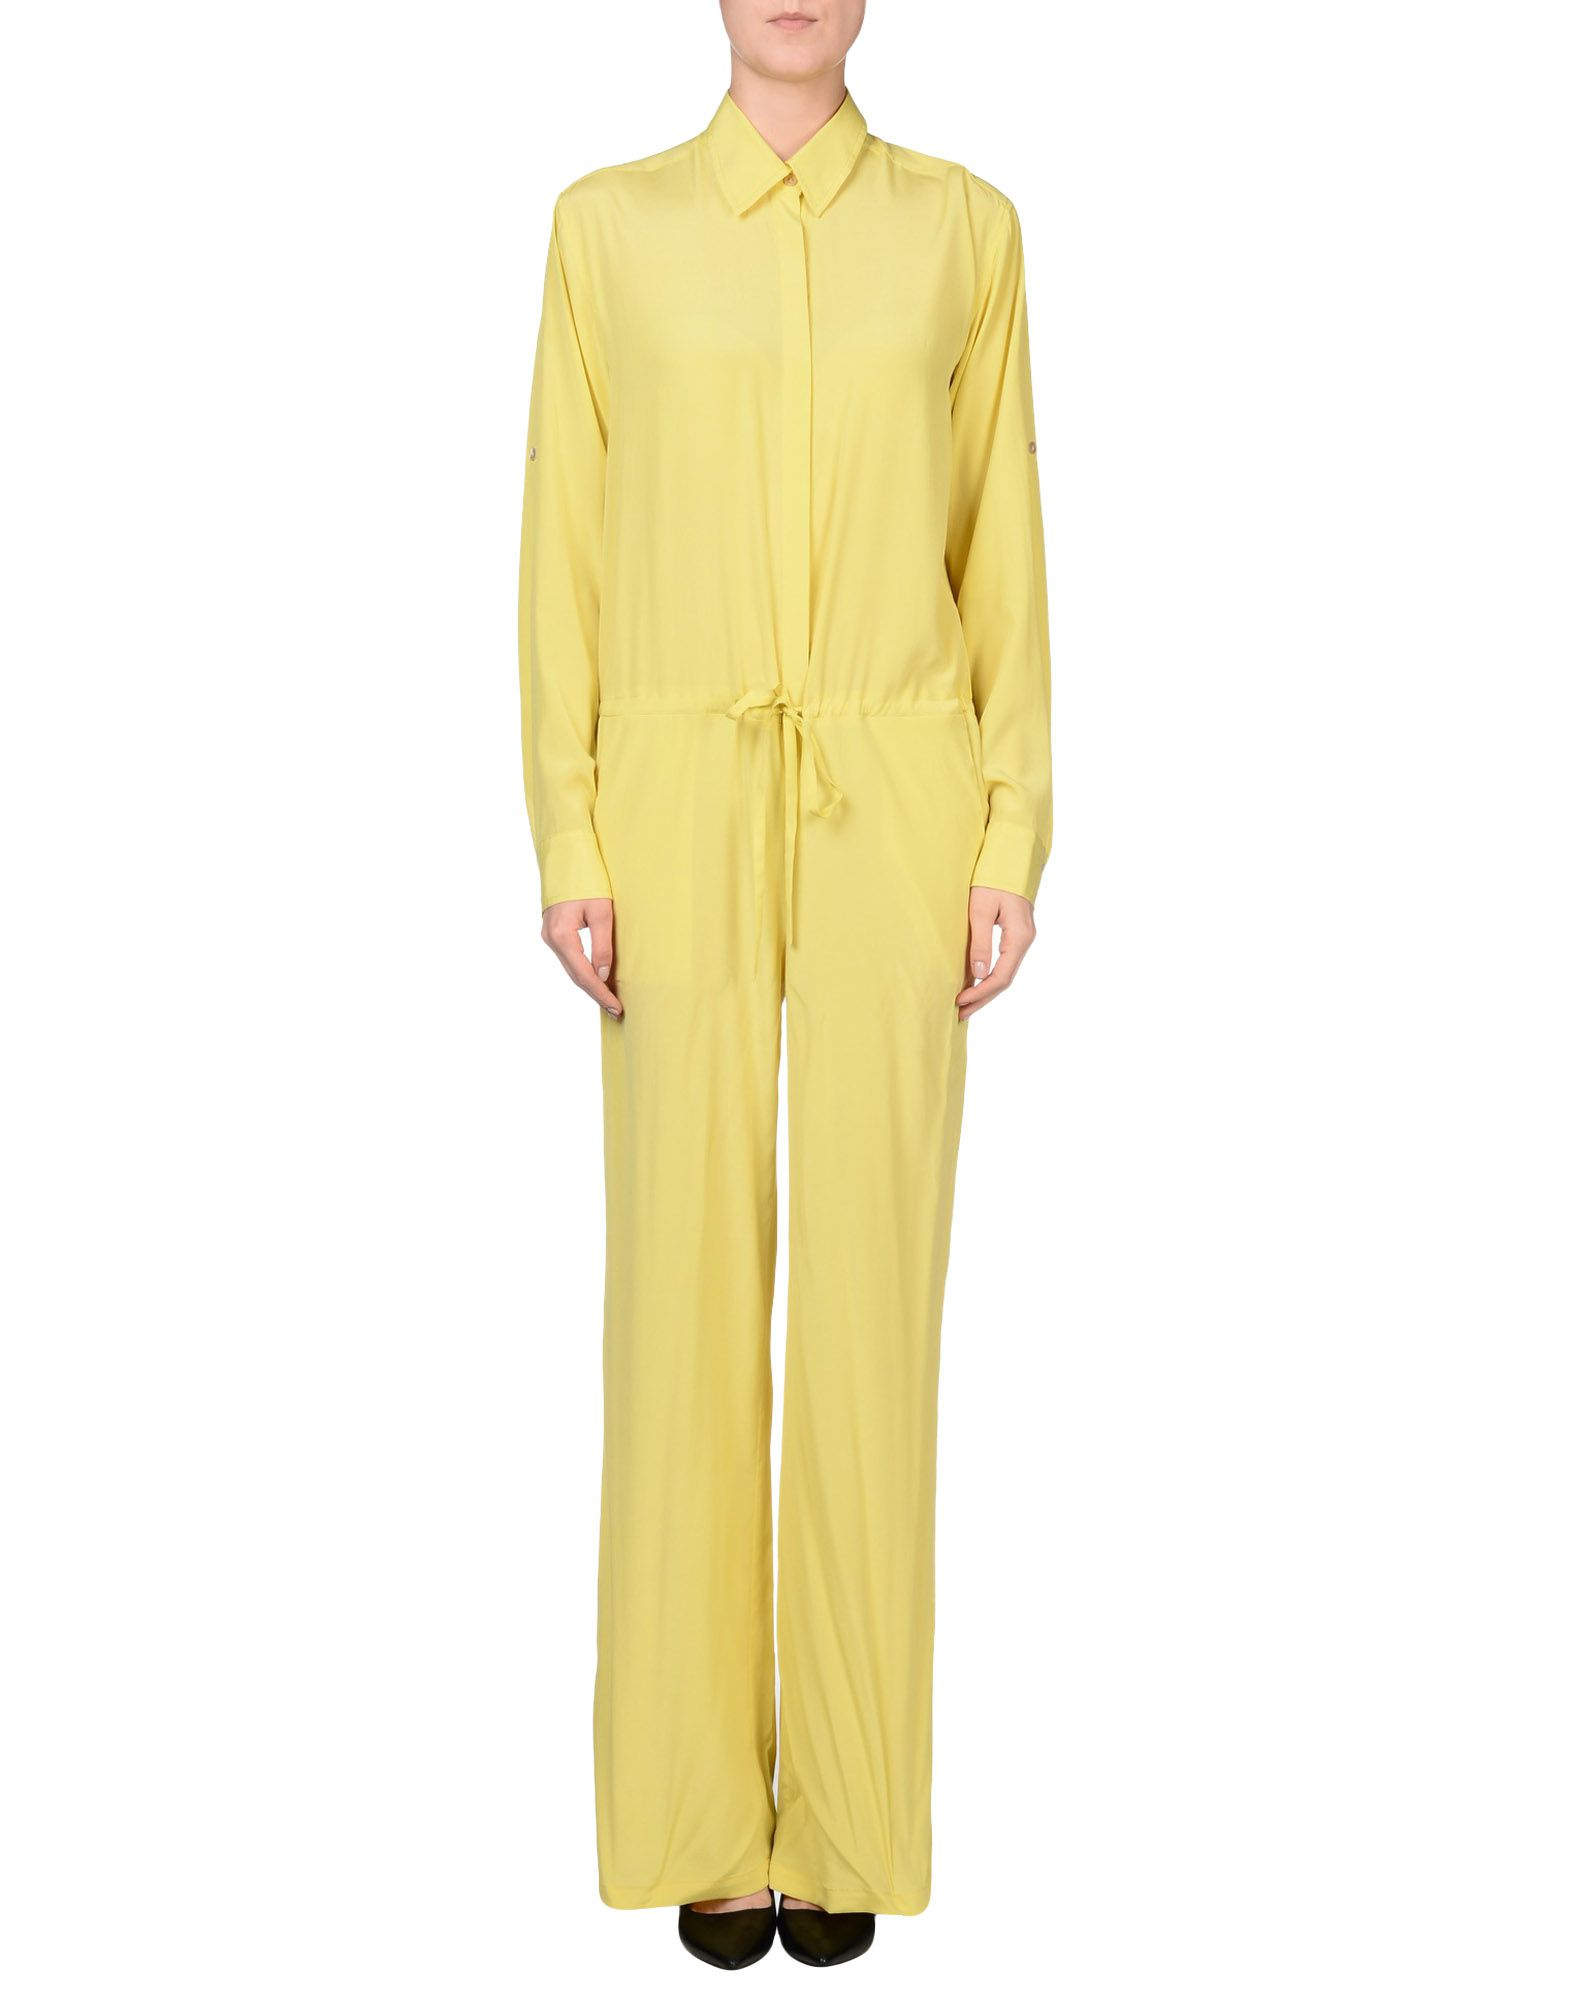 Lyst - P.A.R.O.S.H. Jumpsuit in Yellow